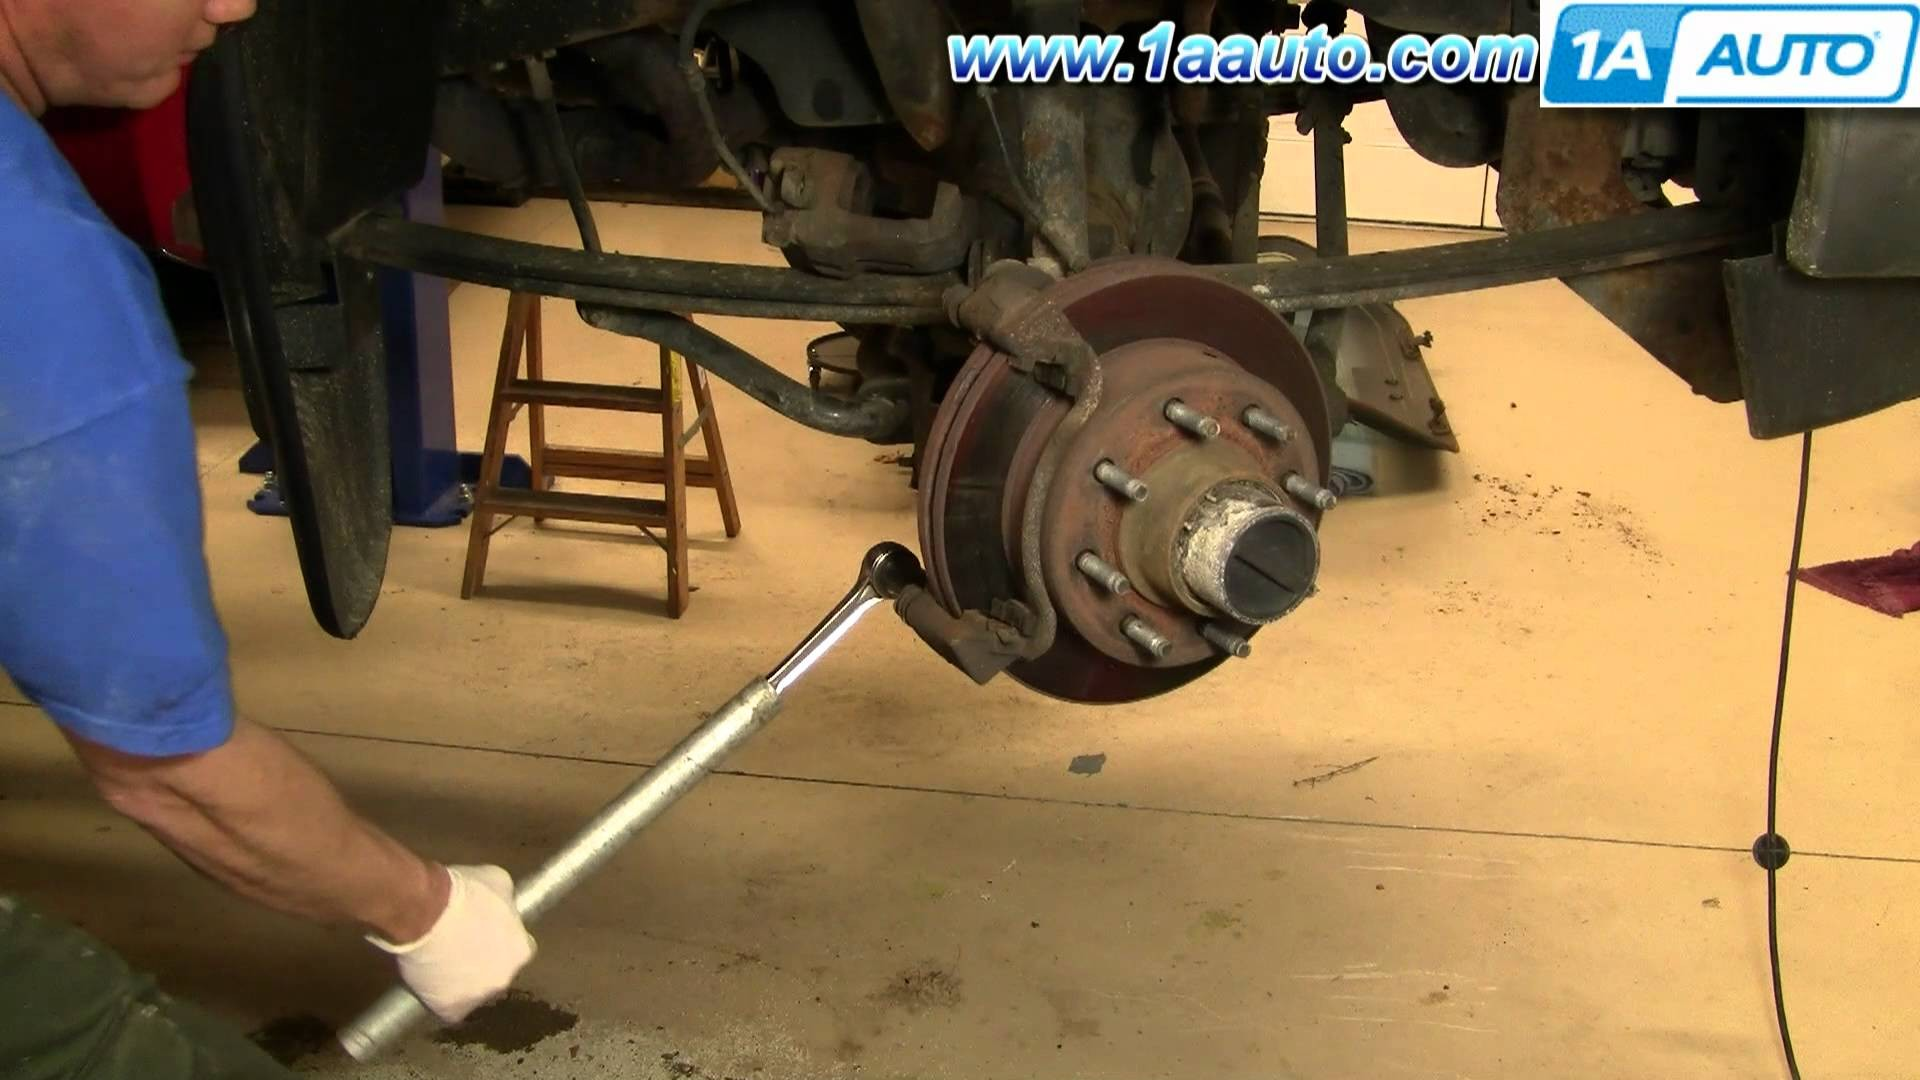 2000 ford ranger rear brake diagram start stop inch wiring how to change shoes on 1999 style guru